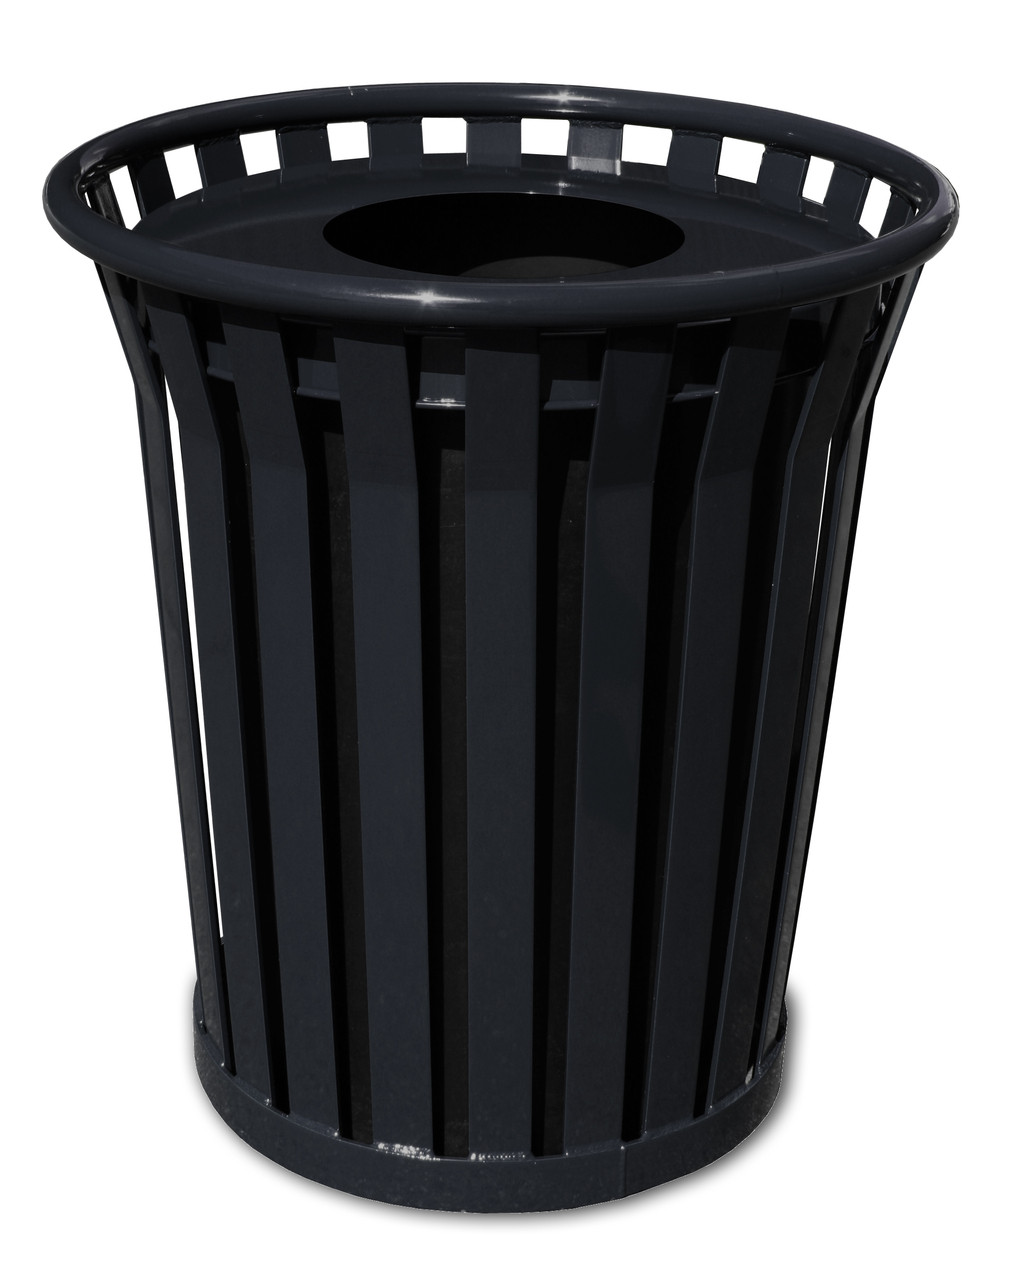 Witt 24 Gallon WC2400-FT-BK Outdoor Waste Receptacle Black